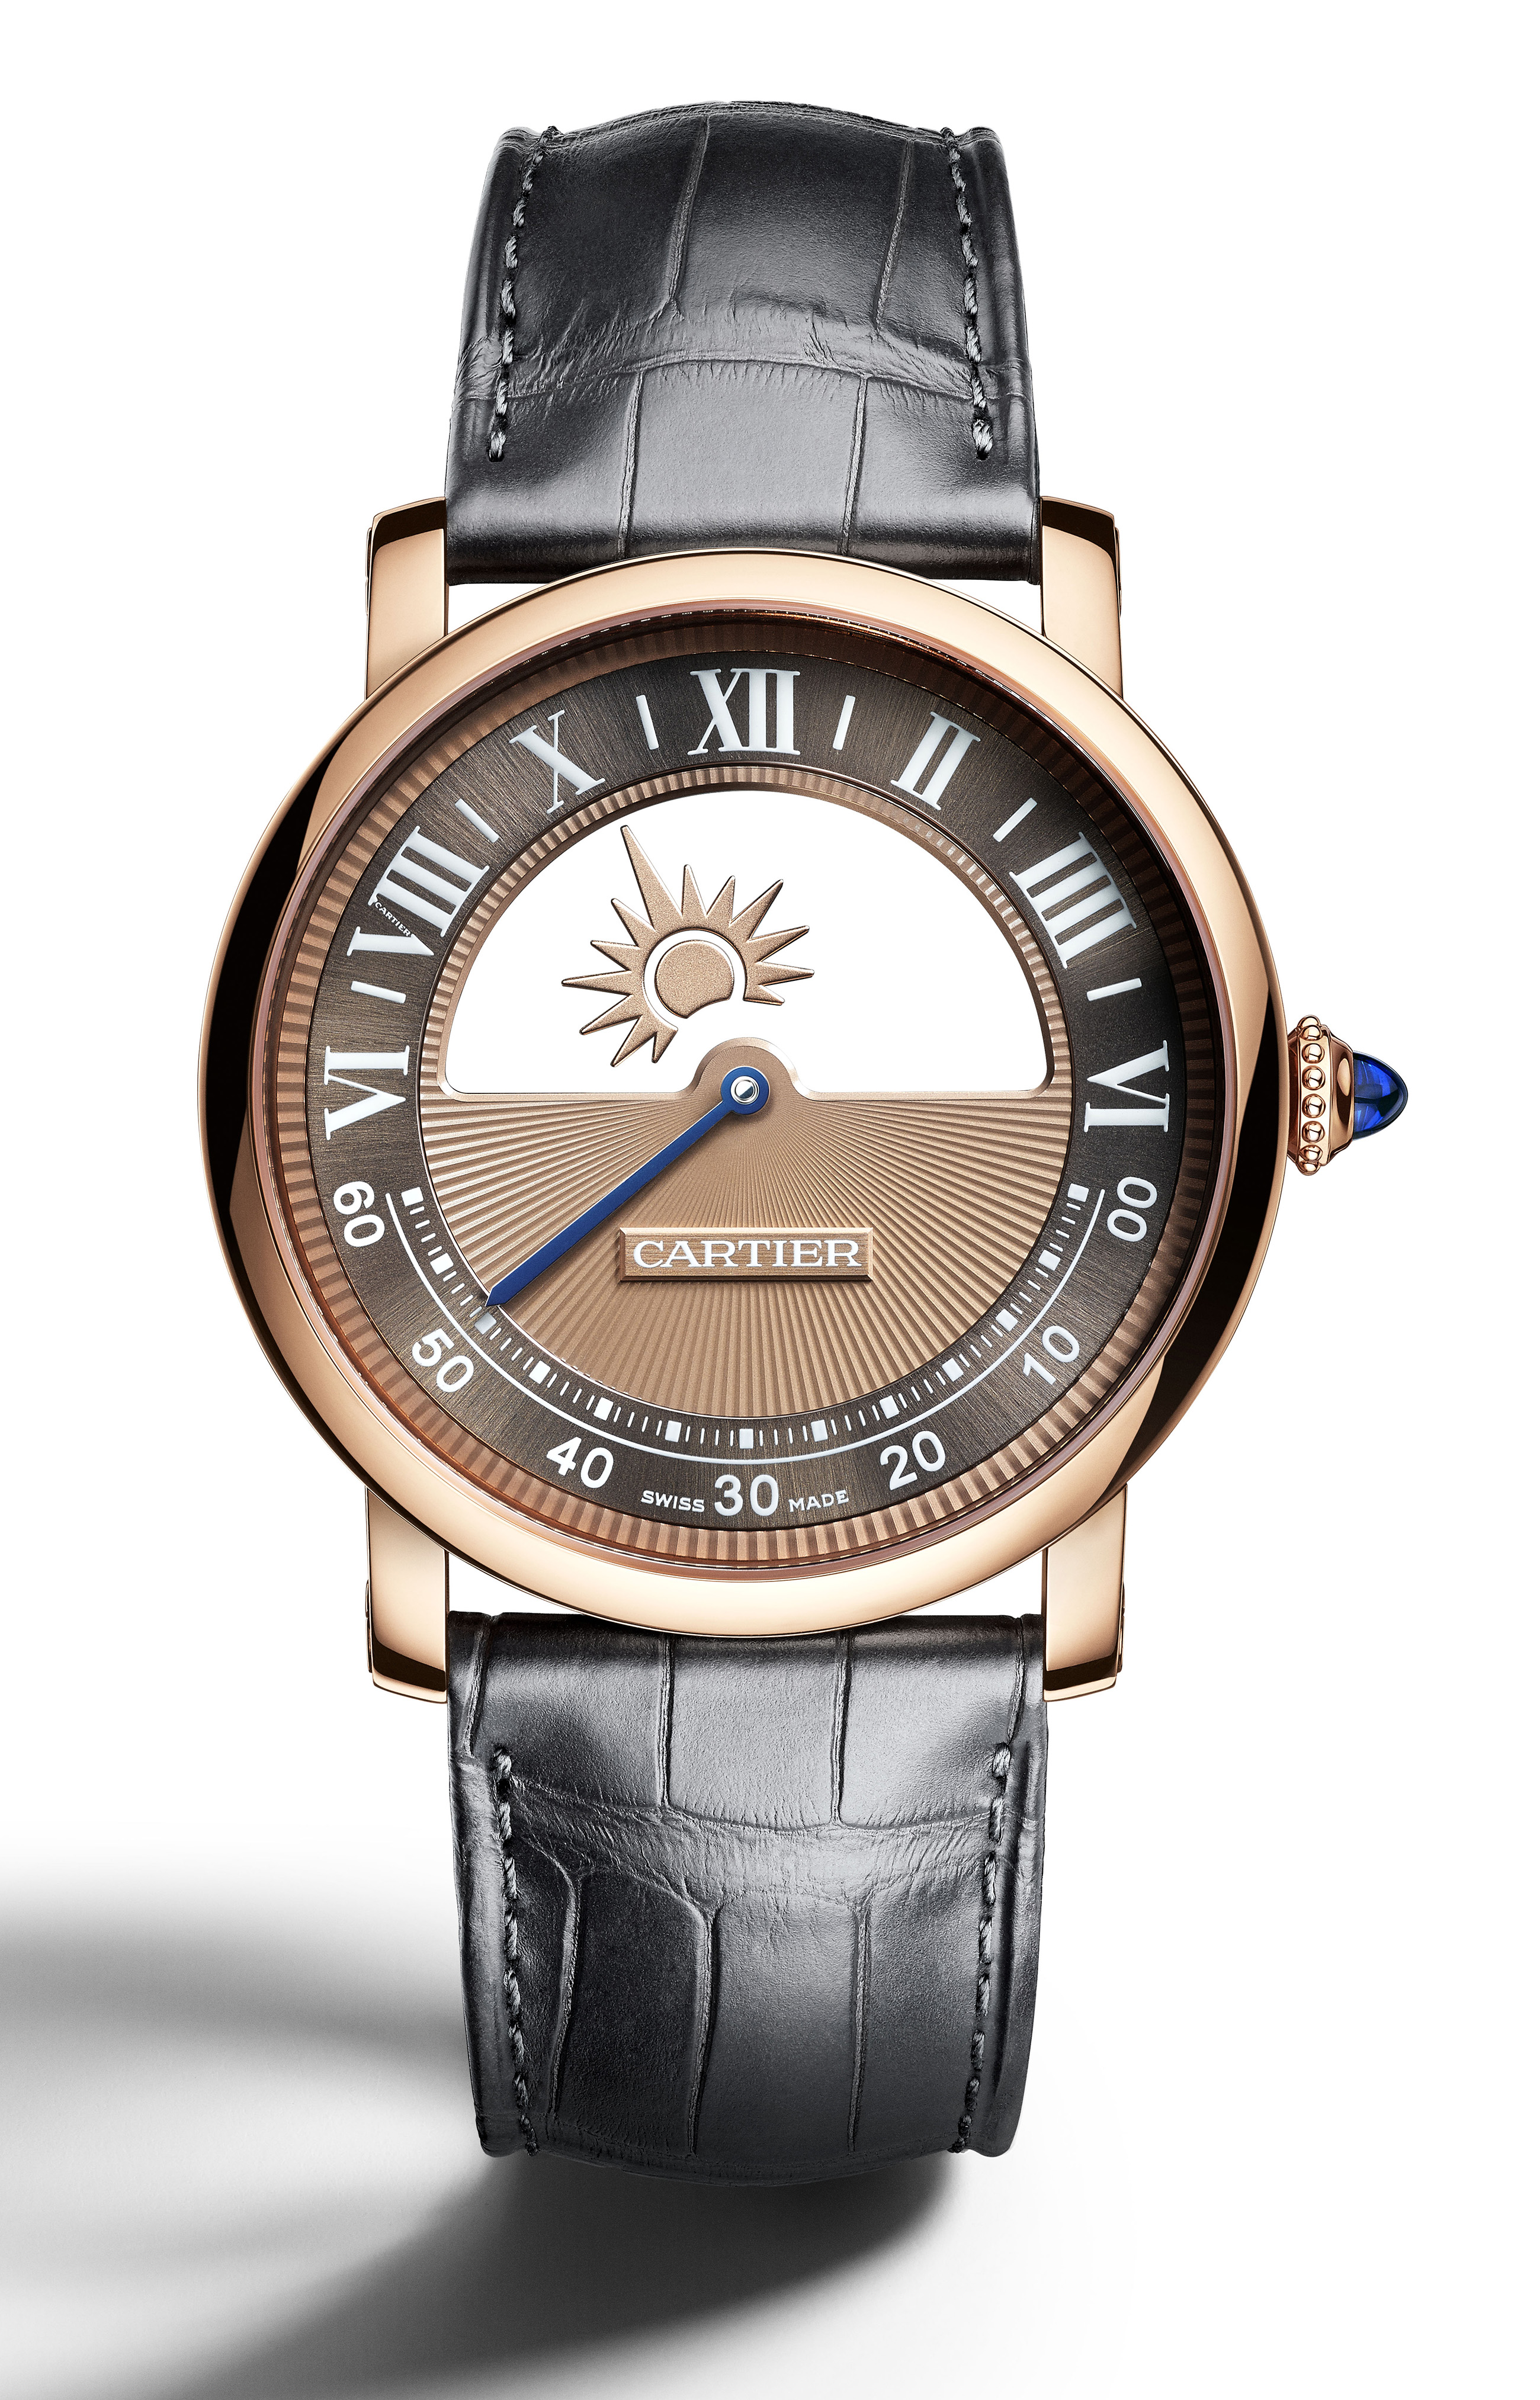 CARTIER_SIHH_ROTONDE_MYSTERIOUS_DAY_AND_NIGHT fblanc copy